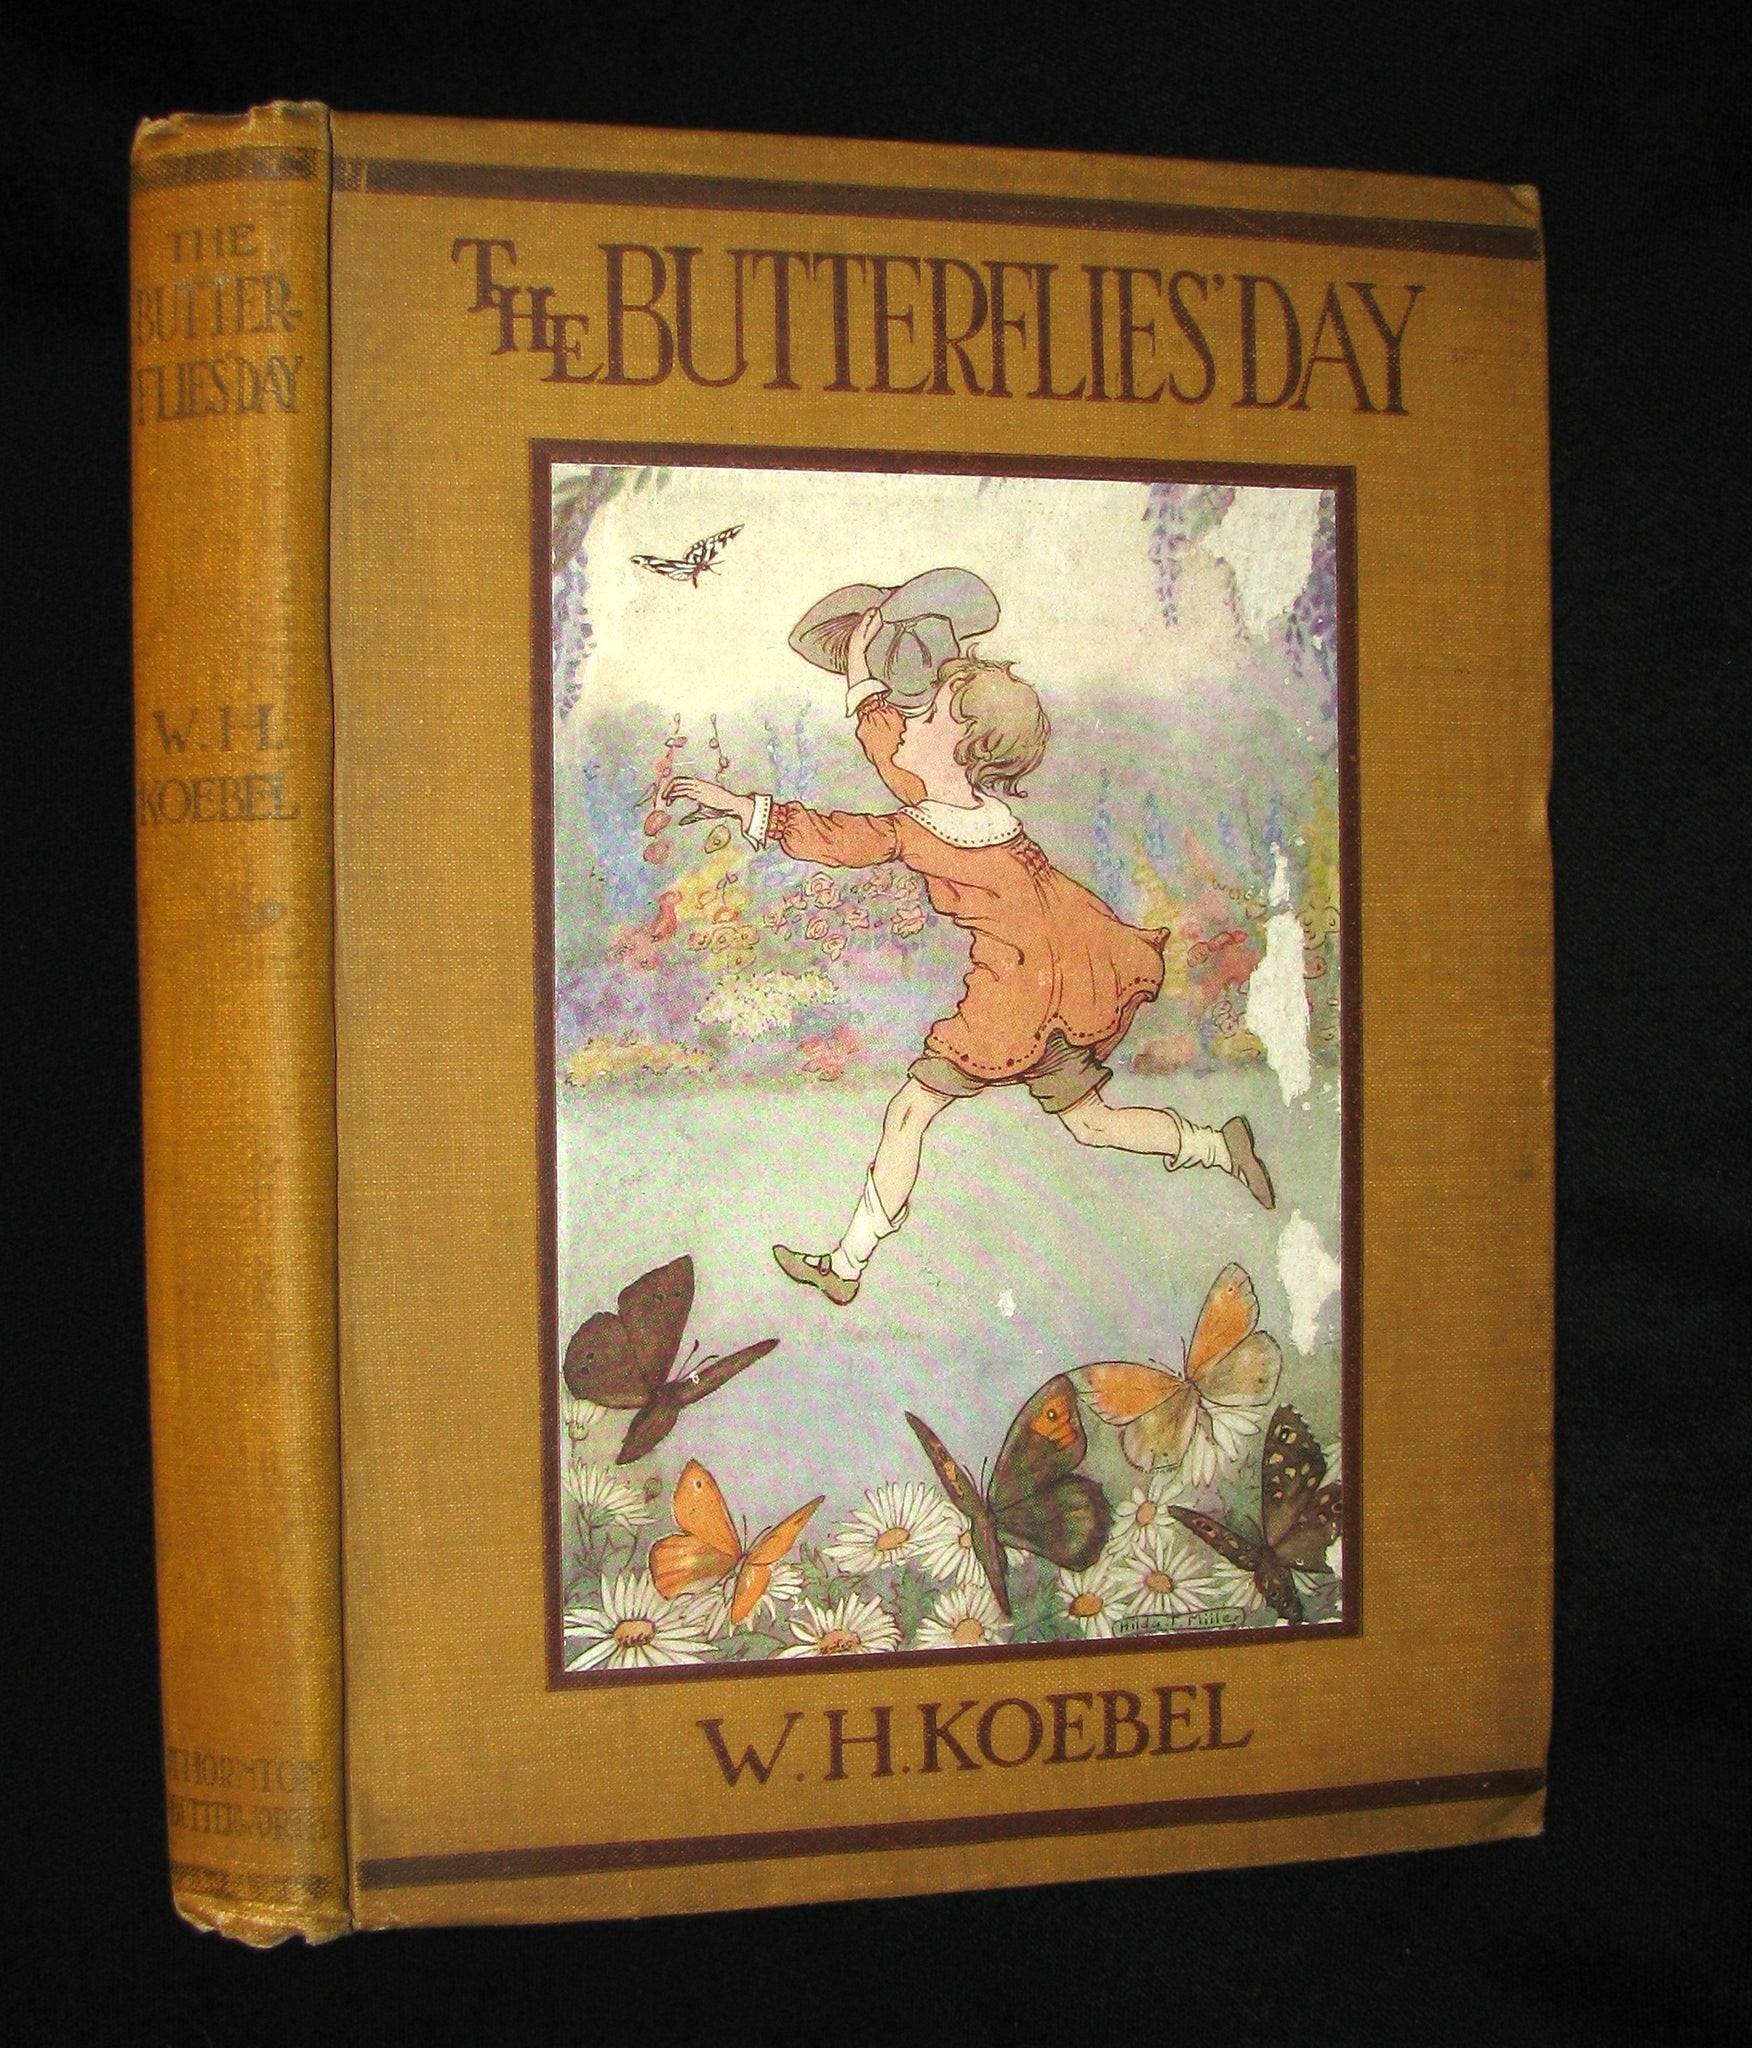 1921 Rare Book - The Butterflies' Day Illustrated by Hilda T. Miller. First Edition.